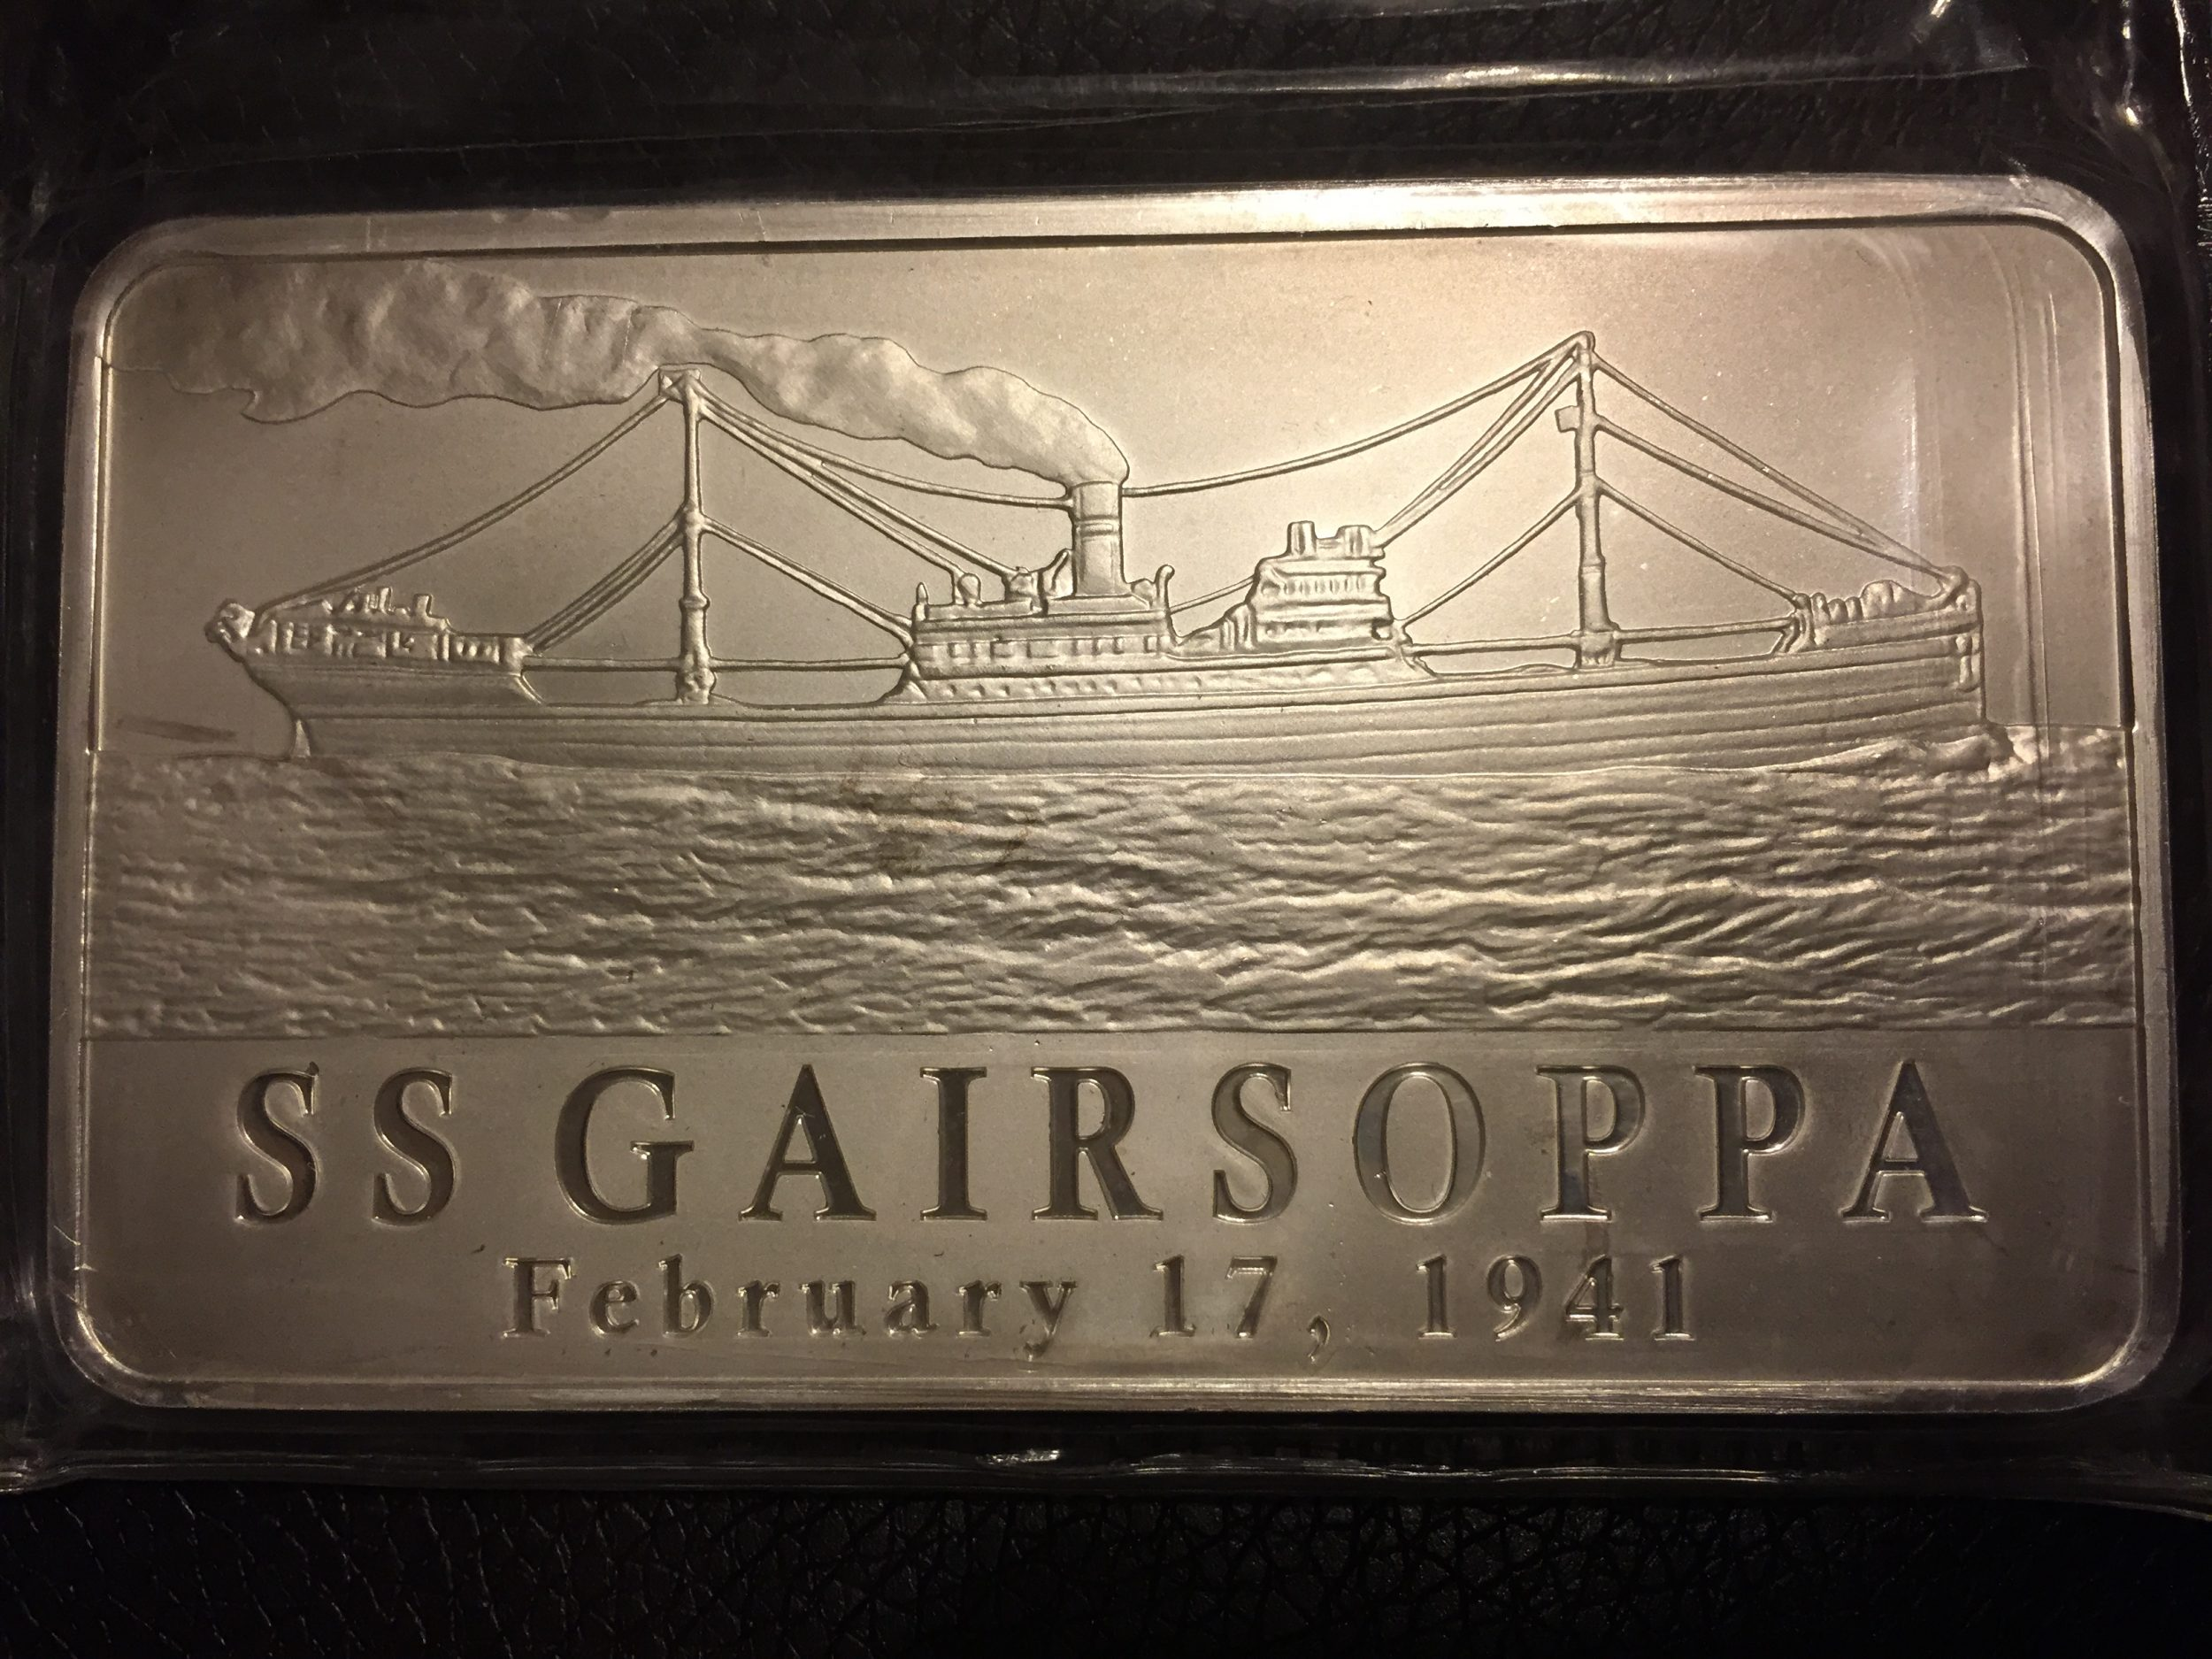 Silver salvaged from wreck of SS Gairsoppa in 2011 (Sarah Sundin collection)